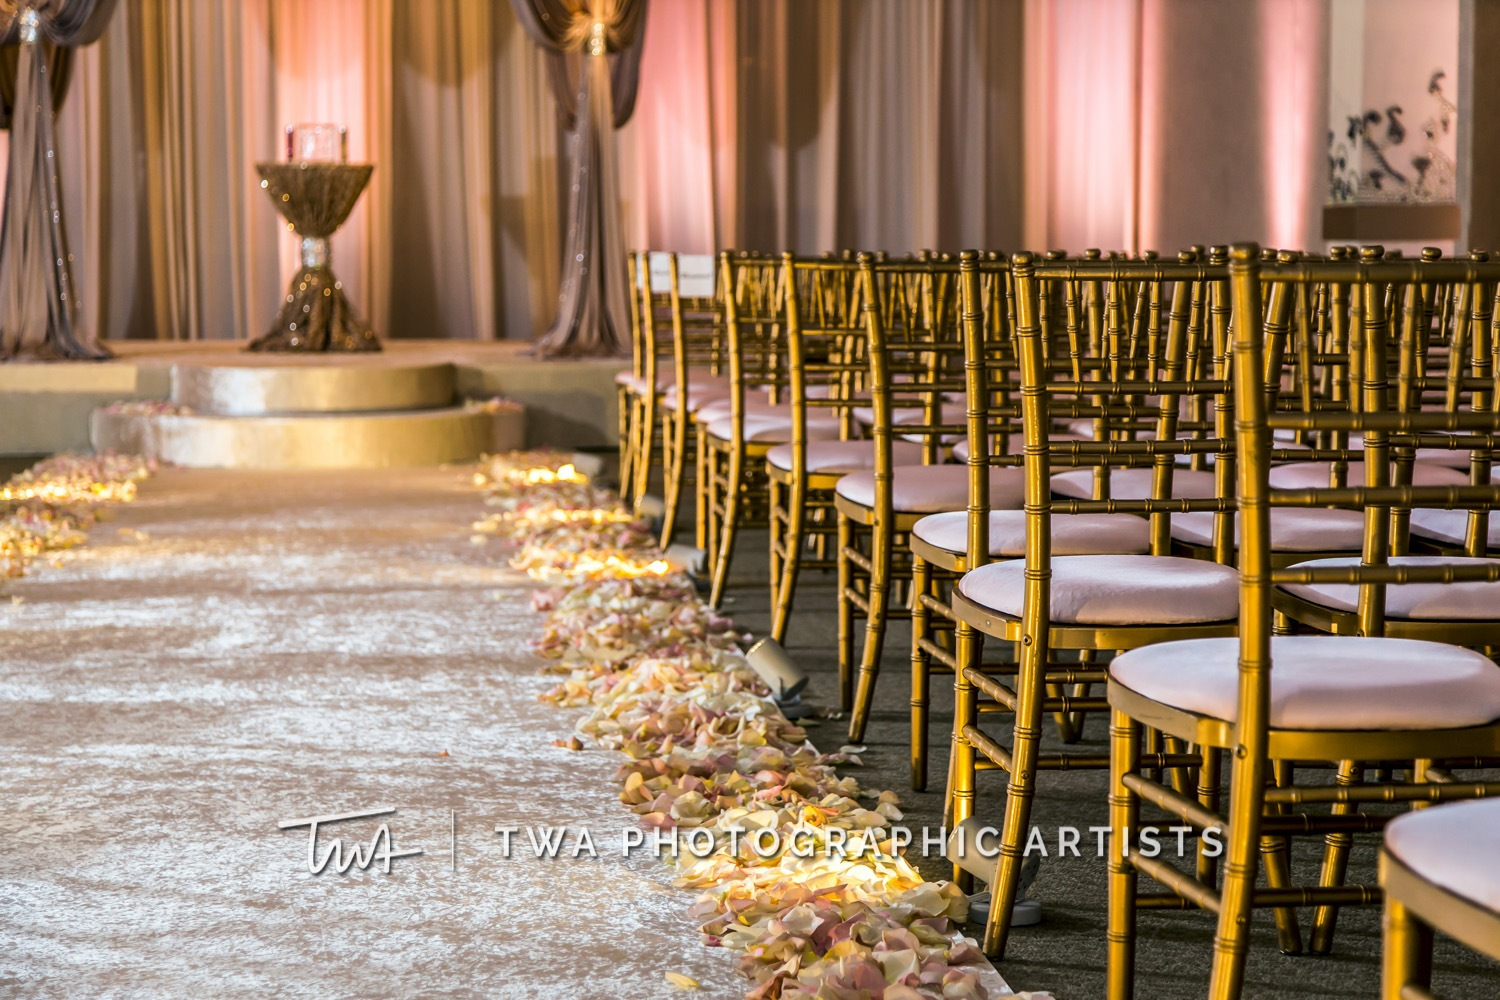 Chicago-Wedding-Photographer-TWA-Photographic-Artists-Belvedere-Banquets_Lavender_Chambers_SG-0235